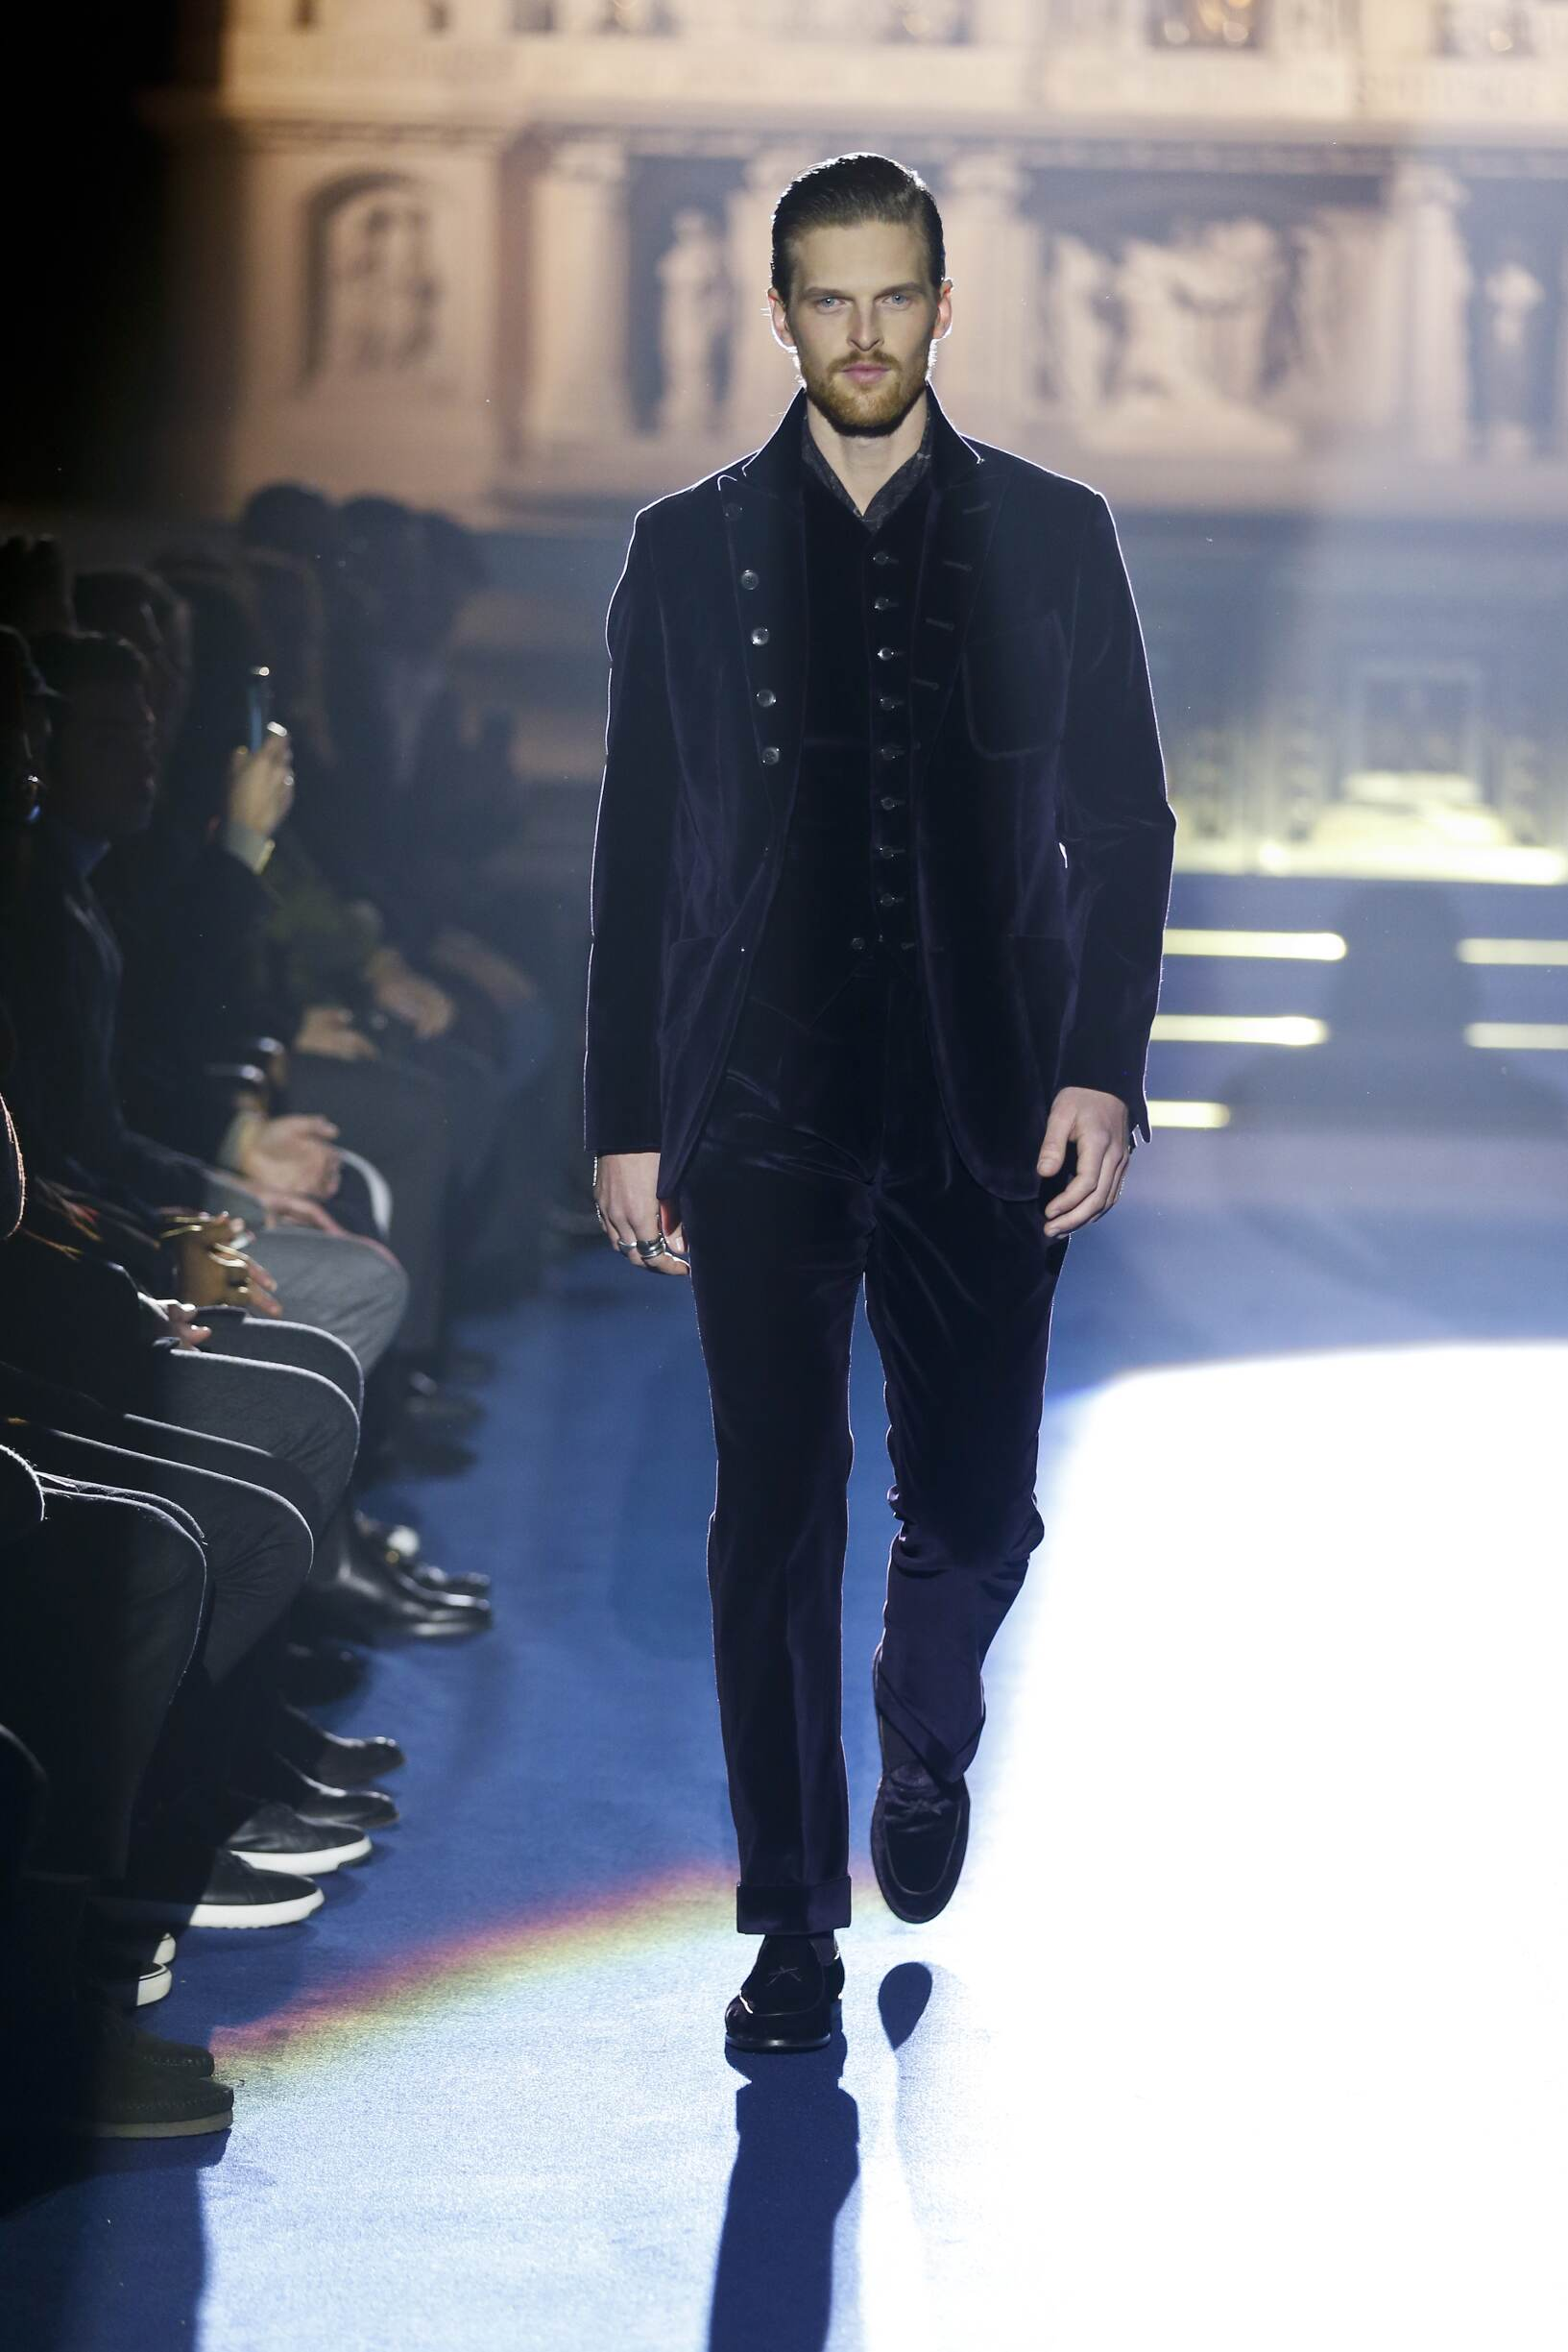 Catwalk Joseph Abboud Winter 2017